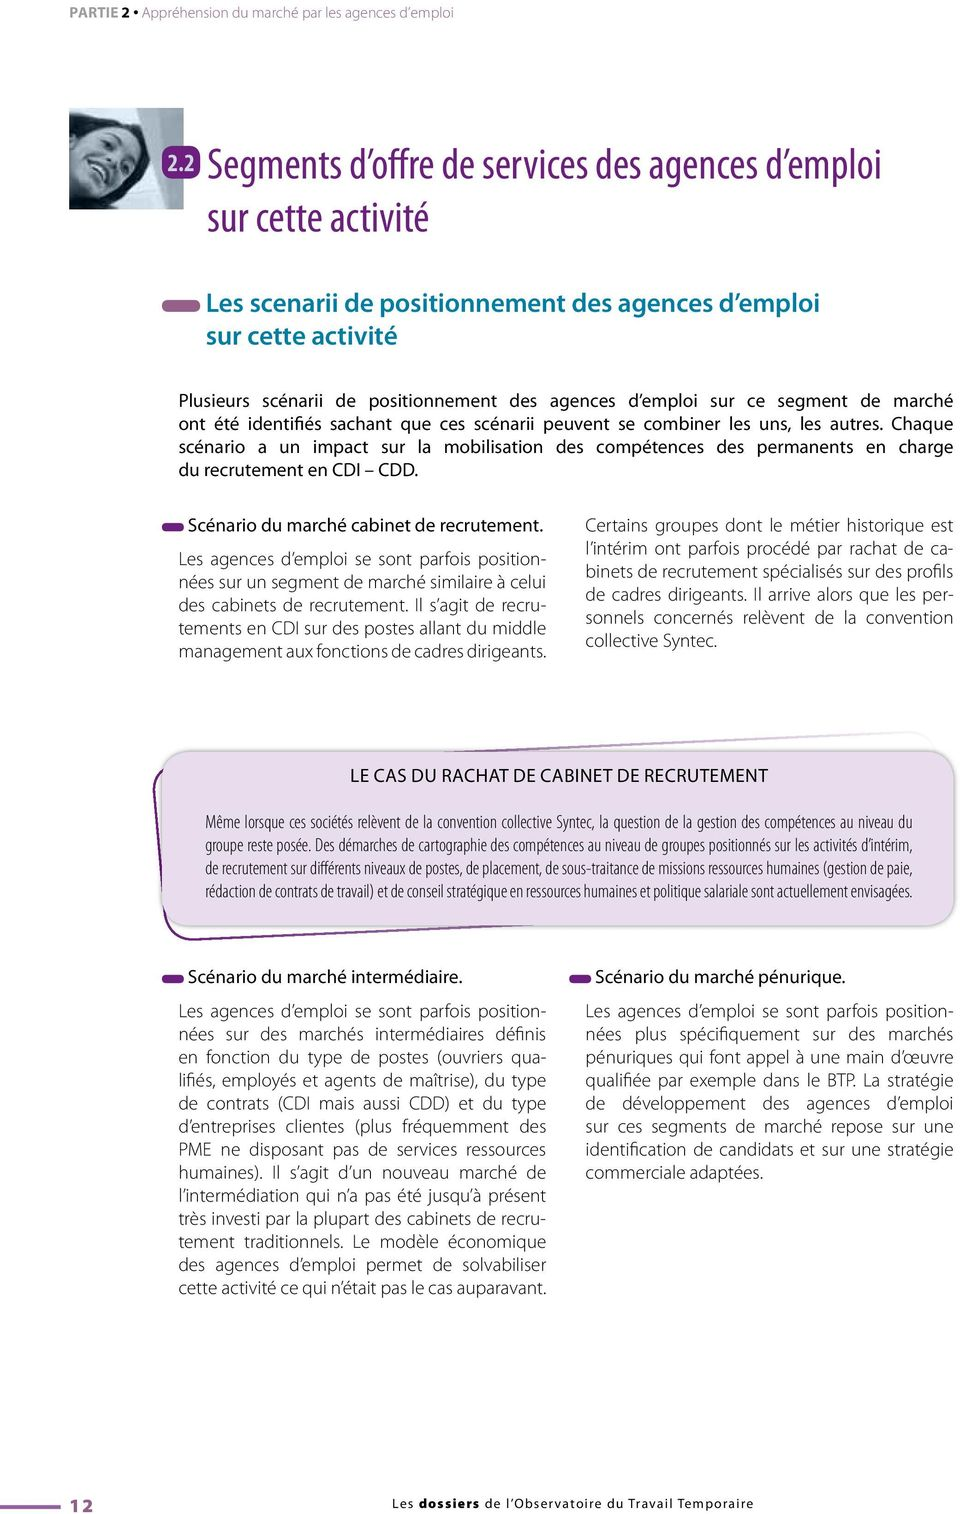 Les comp tences des permanents face la nouvelle activit - Cabinet de recrutement page personnel ...